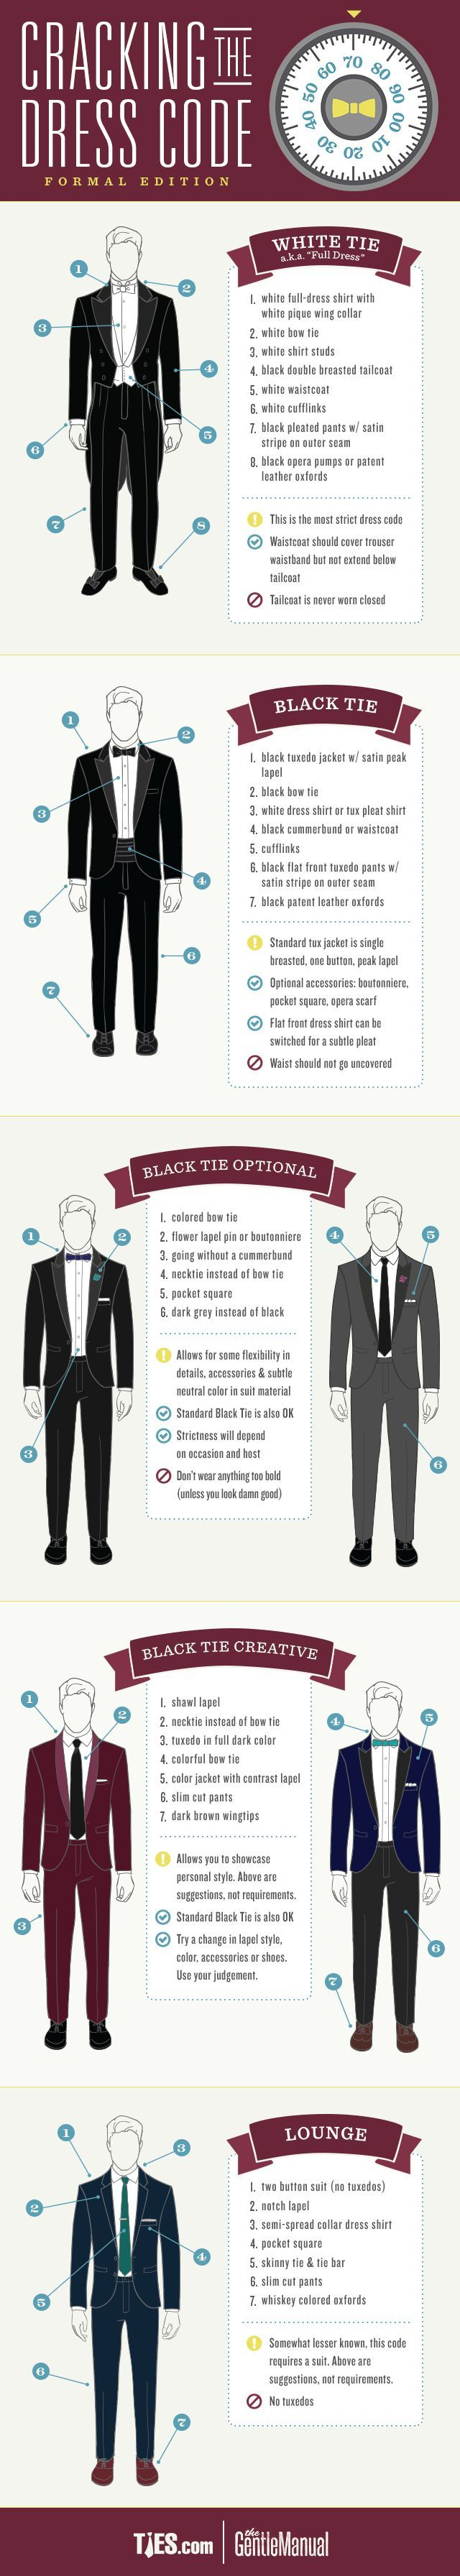 34 Best So Hot Images On Pinterest Man Style Boots And Clothing Balthus Tie Knot How To A Necktie Agreeordie Renting Tuxedo In 8 Easy Steps